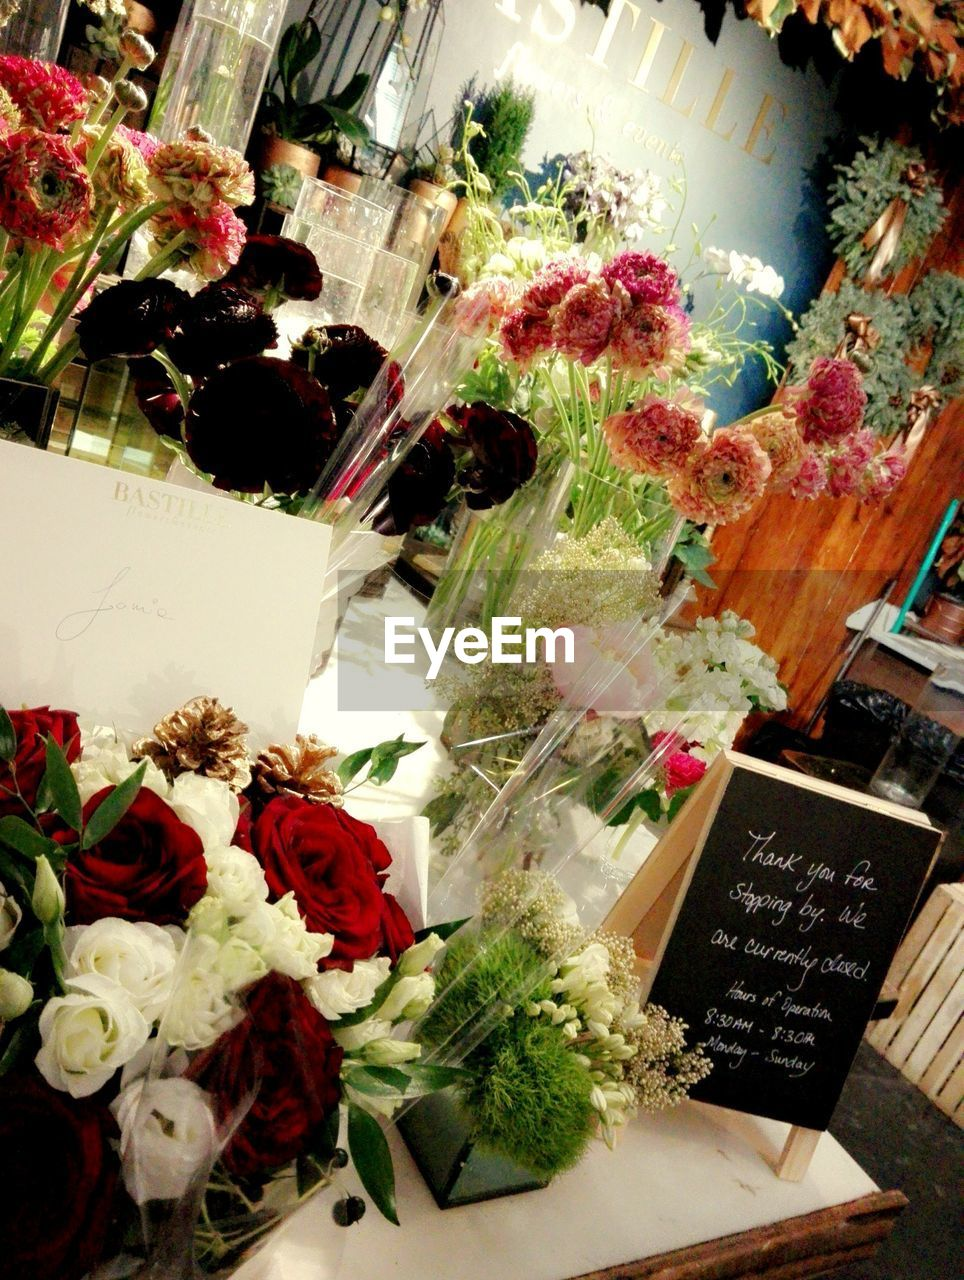 flower, variation, freshness, retail, bouquet, choice, indoors, for sale, no people, arrangement, flower shop, price tag, food, day, close-up, flower head